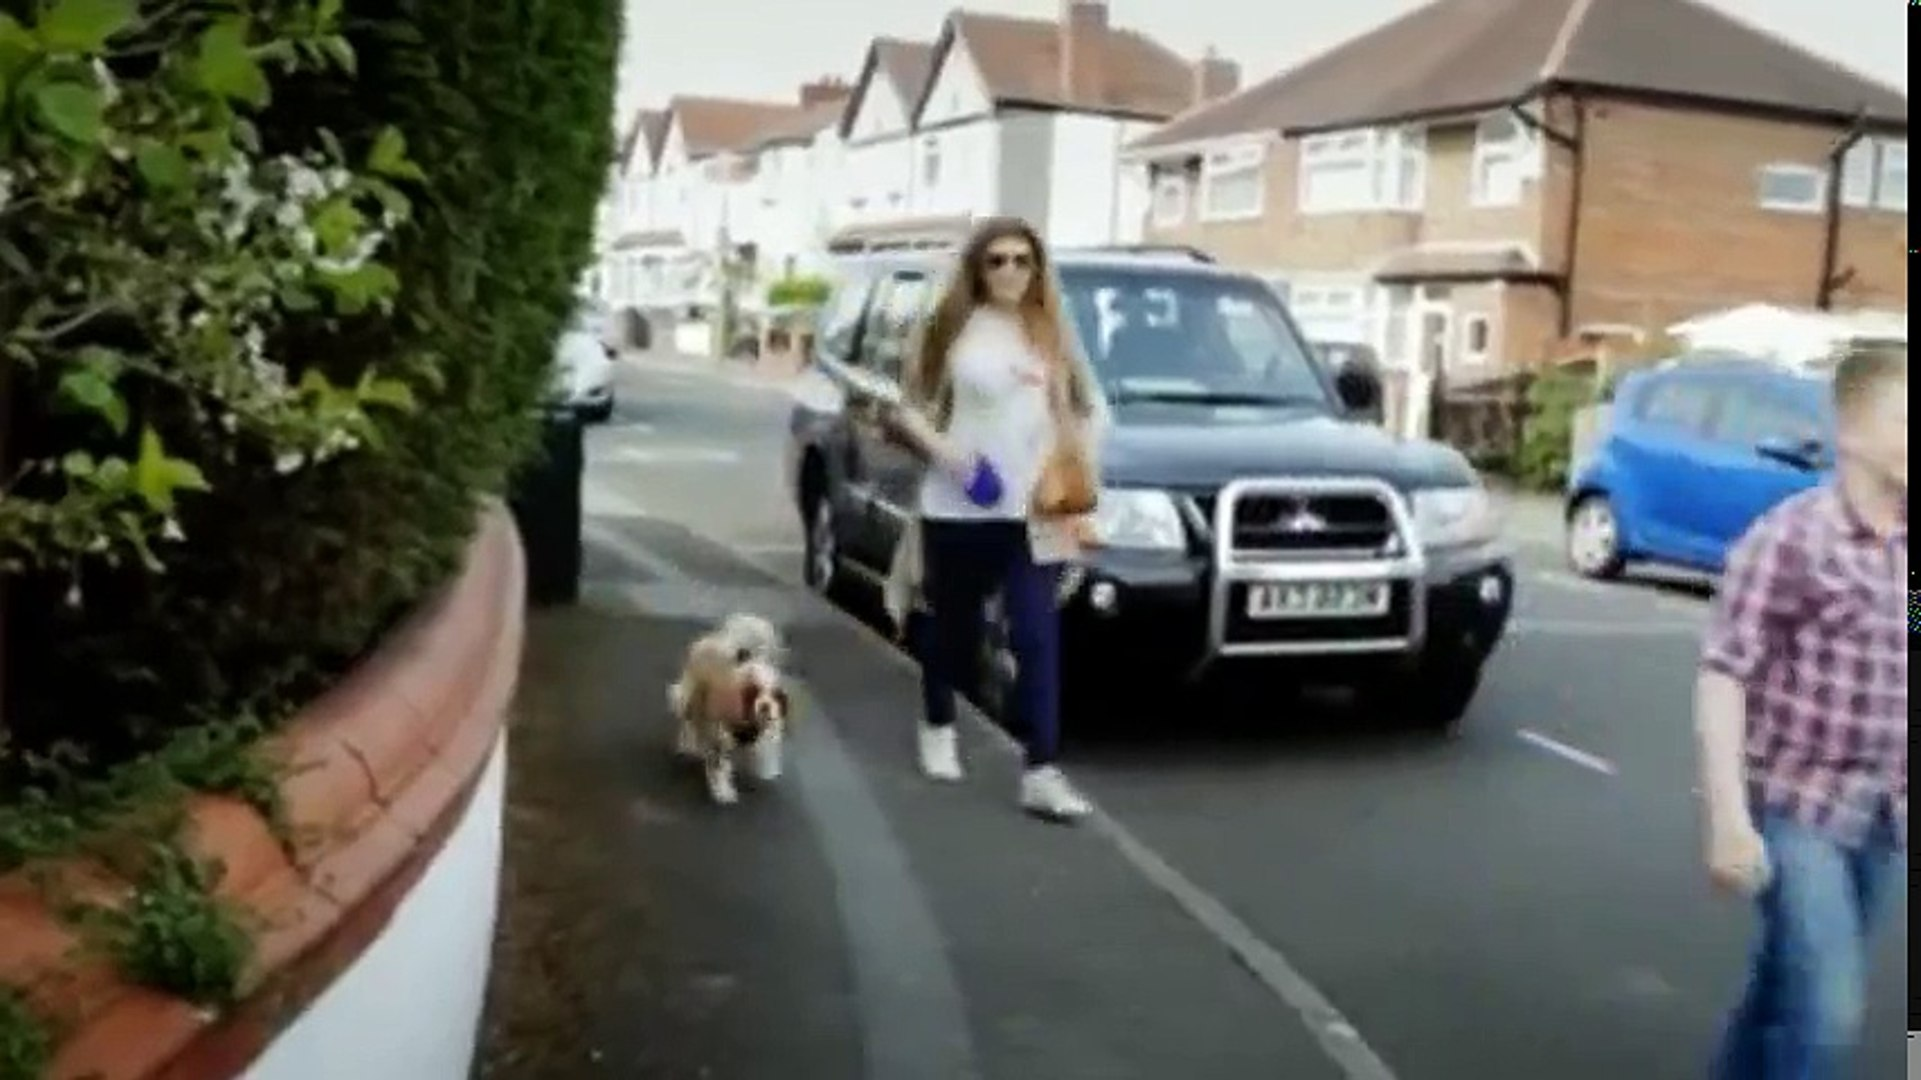 Dogs Their Secret Lives S01 - Ep01 Fat Dogs HD Watch